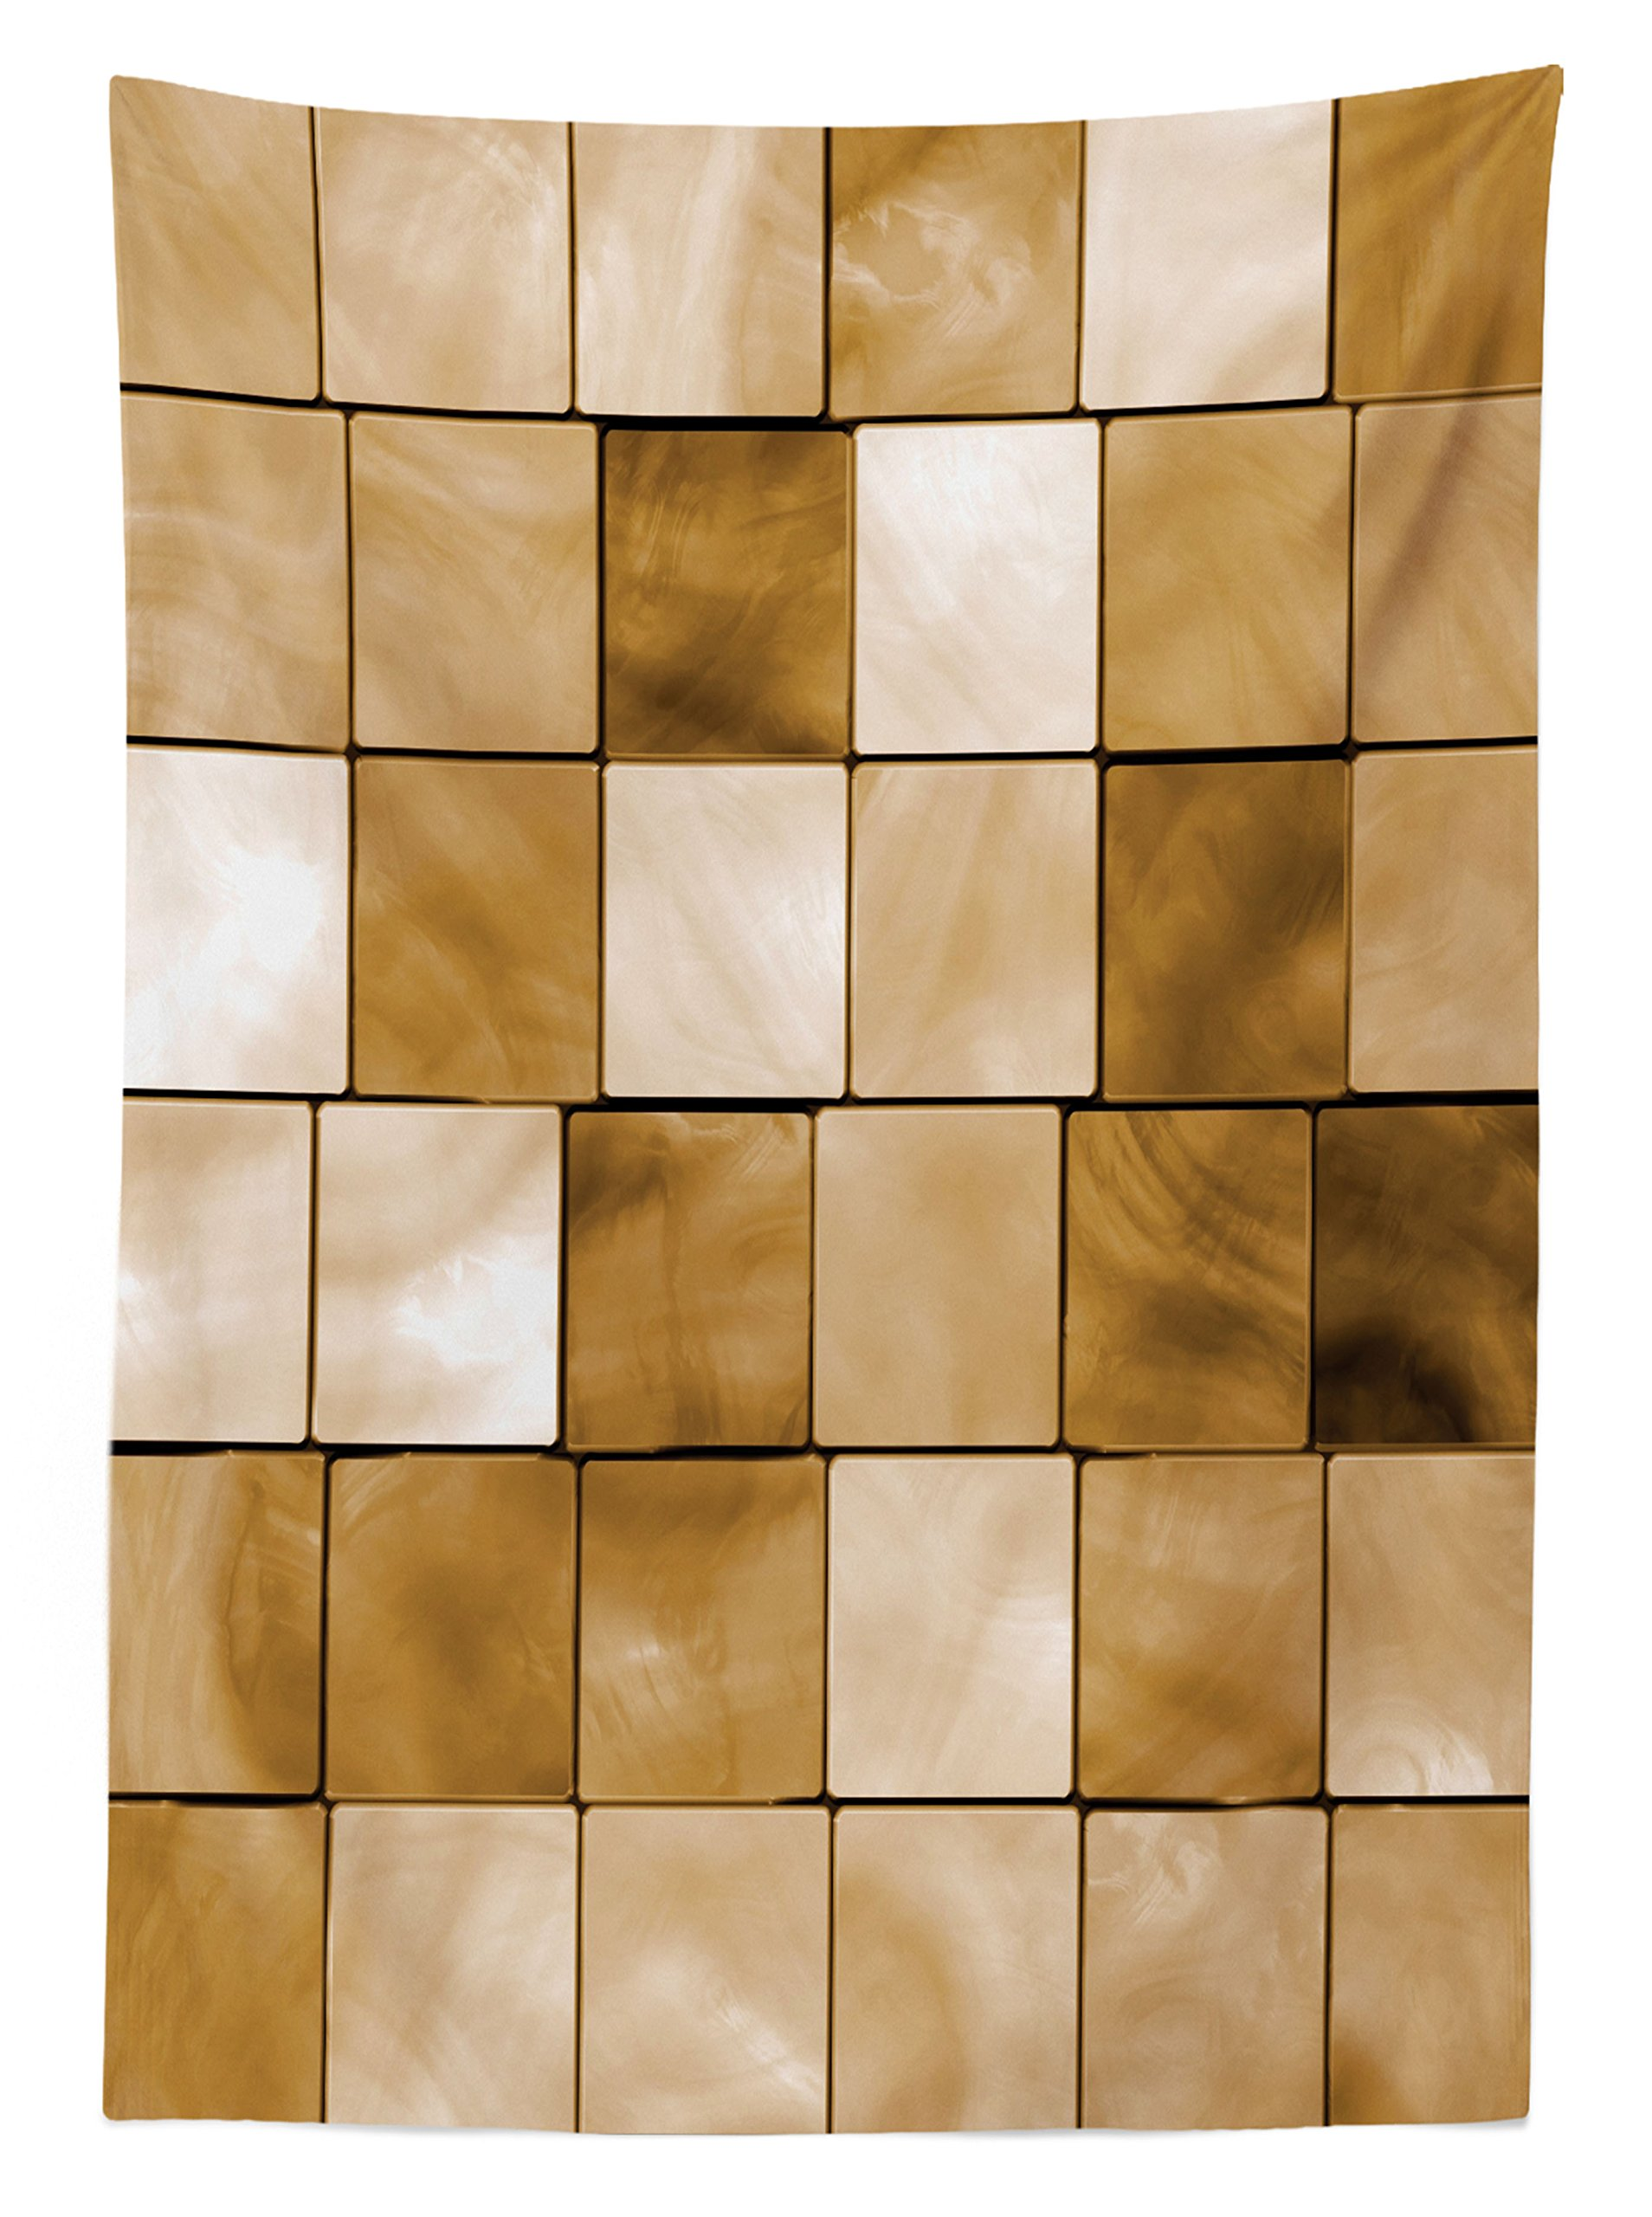 Lunarable Beige Outdoor Tablecloth, Faded Tiles Wood Cubes Squares Geometric Inspired Modern Simple Urban Boho Artwork Print, Decorative Washable Picnic Table Cloth, 58 X 84 inches, Brown by Lunarable (Image #2)